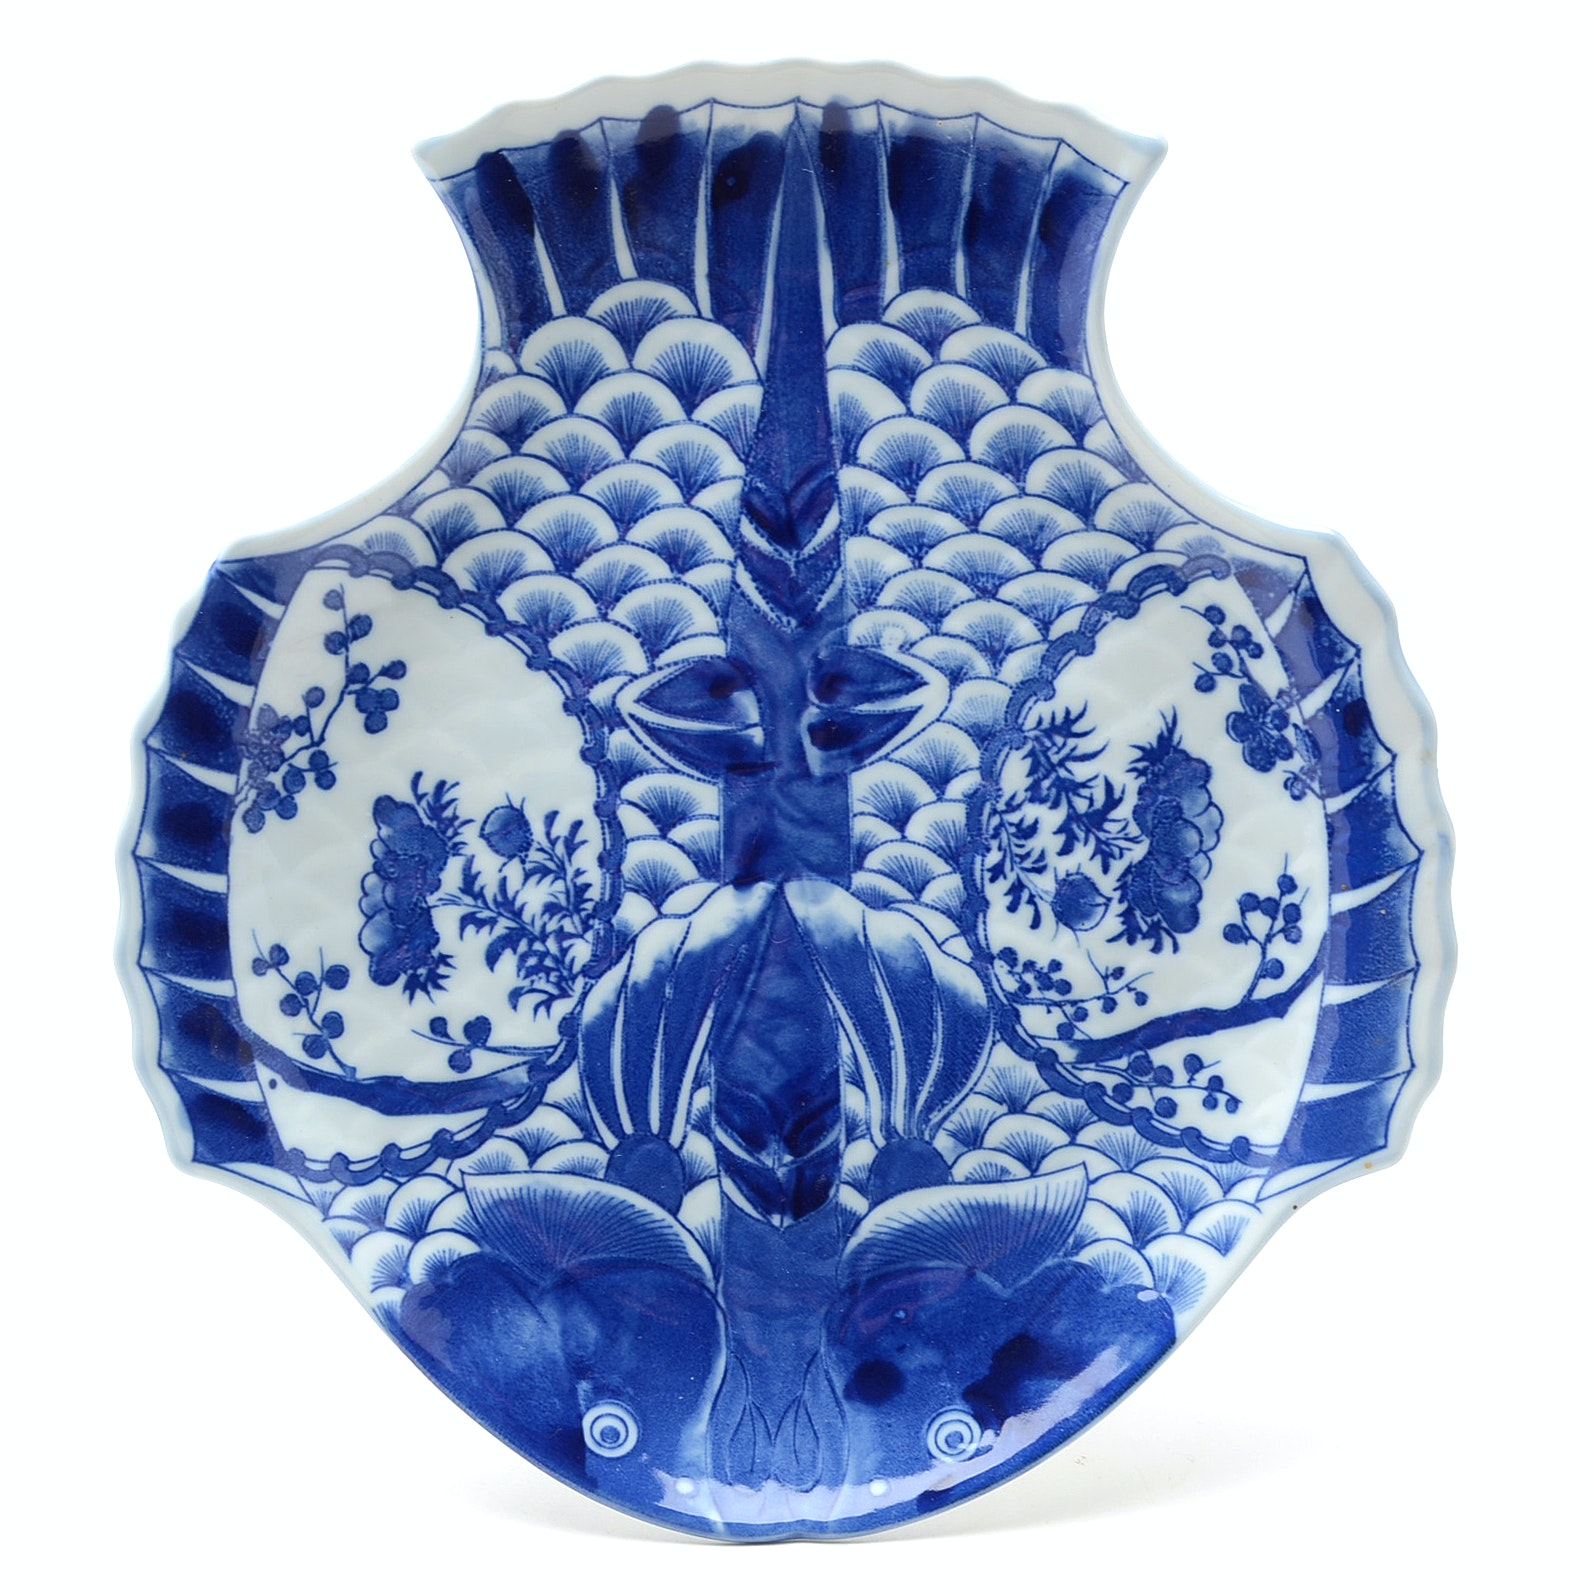 Japanese Arita Blue and White Double-Fish Plate